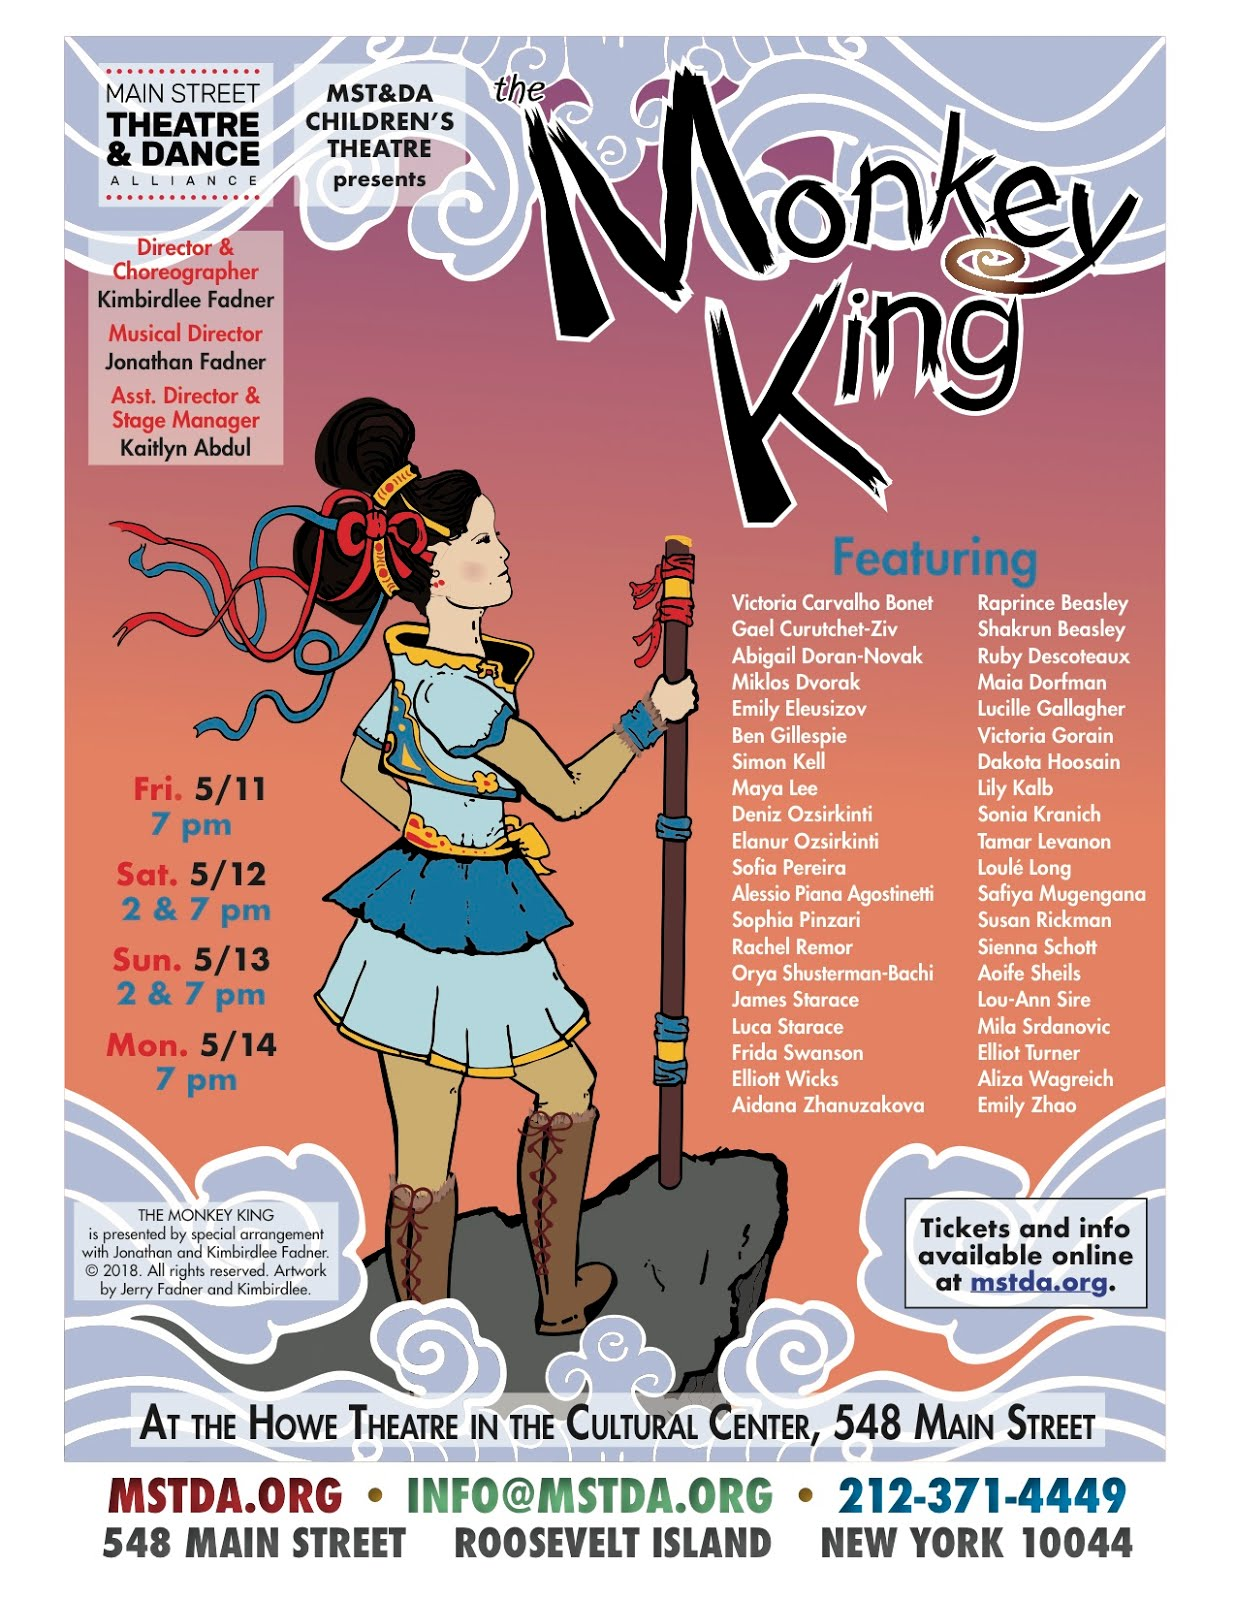 MST&DA Children's Theatre Presents The Monkey King: A Kung-Fusical